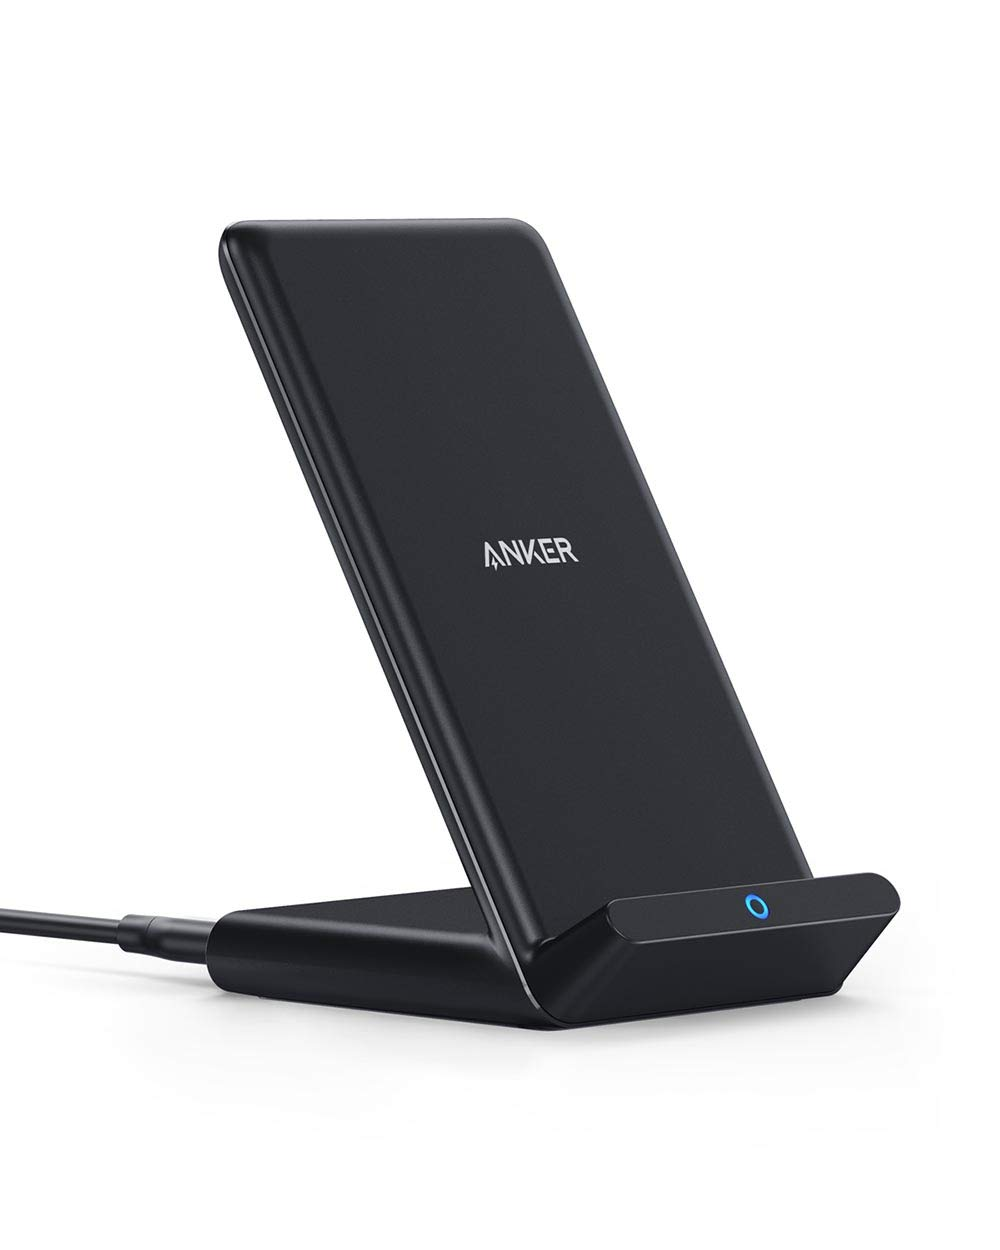 Anker Fast Wireless Charger, 10W Wireless Charging Stand, Qi-Certified, Compatible iPhone XR/Xs Max/XS/X/8/8 Plus, Fast-Charging Galaxy S10/S9/S9+/S8/S8+ and More, PowerWave Stand (No AC Adapter)